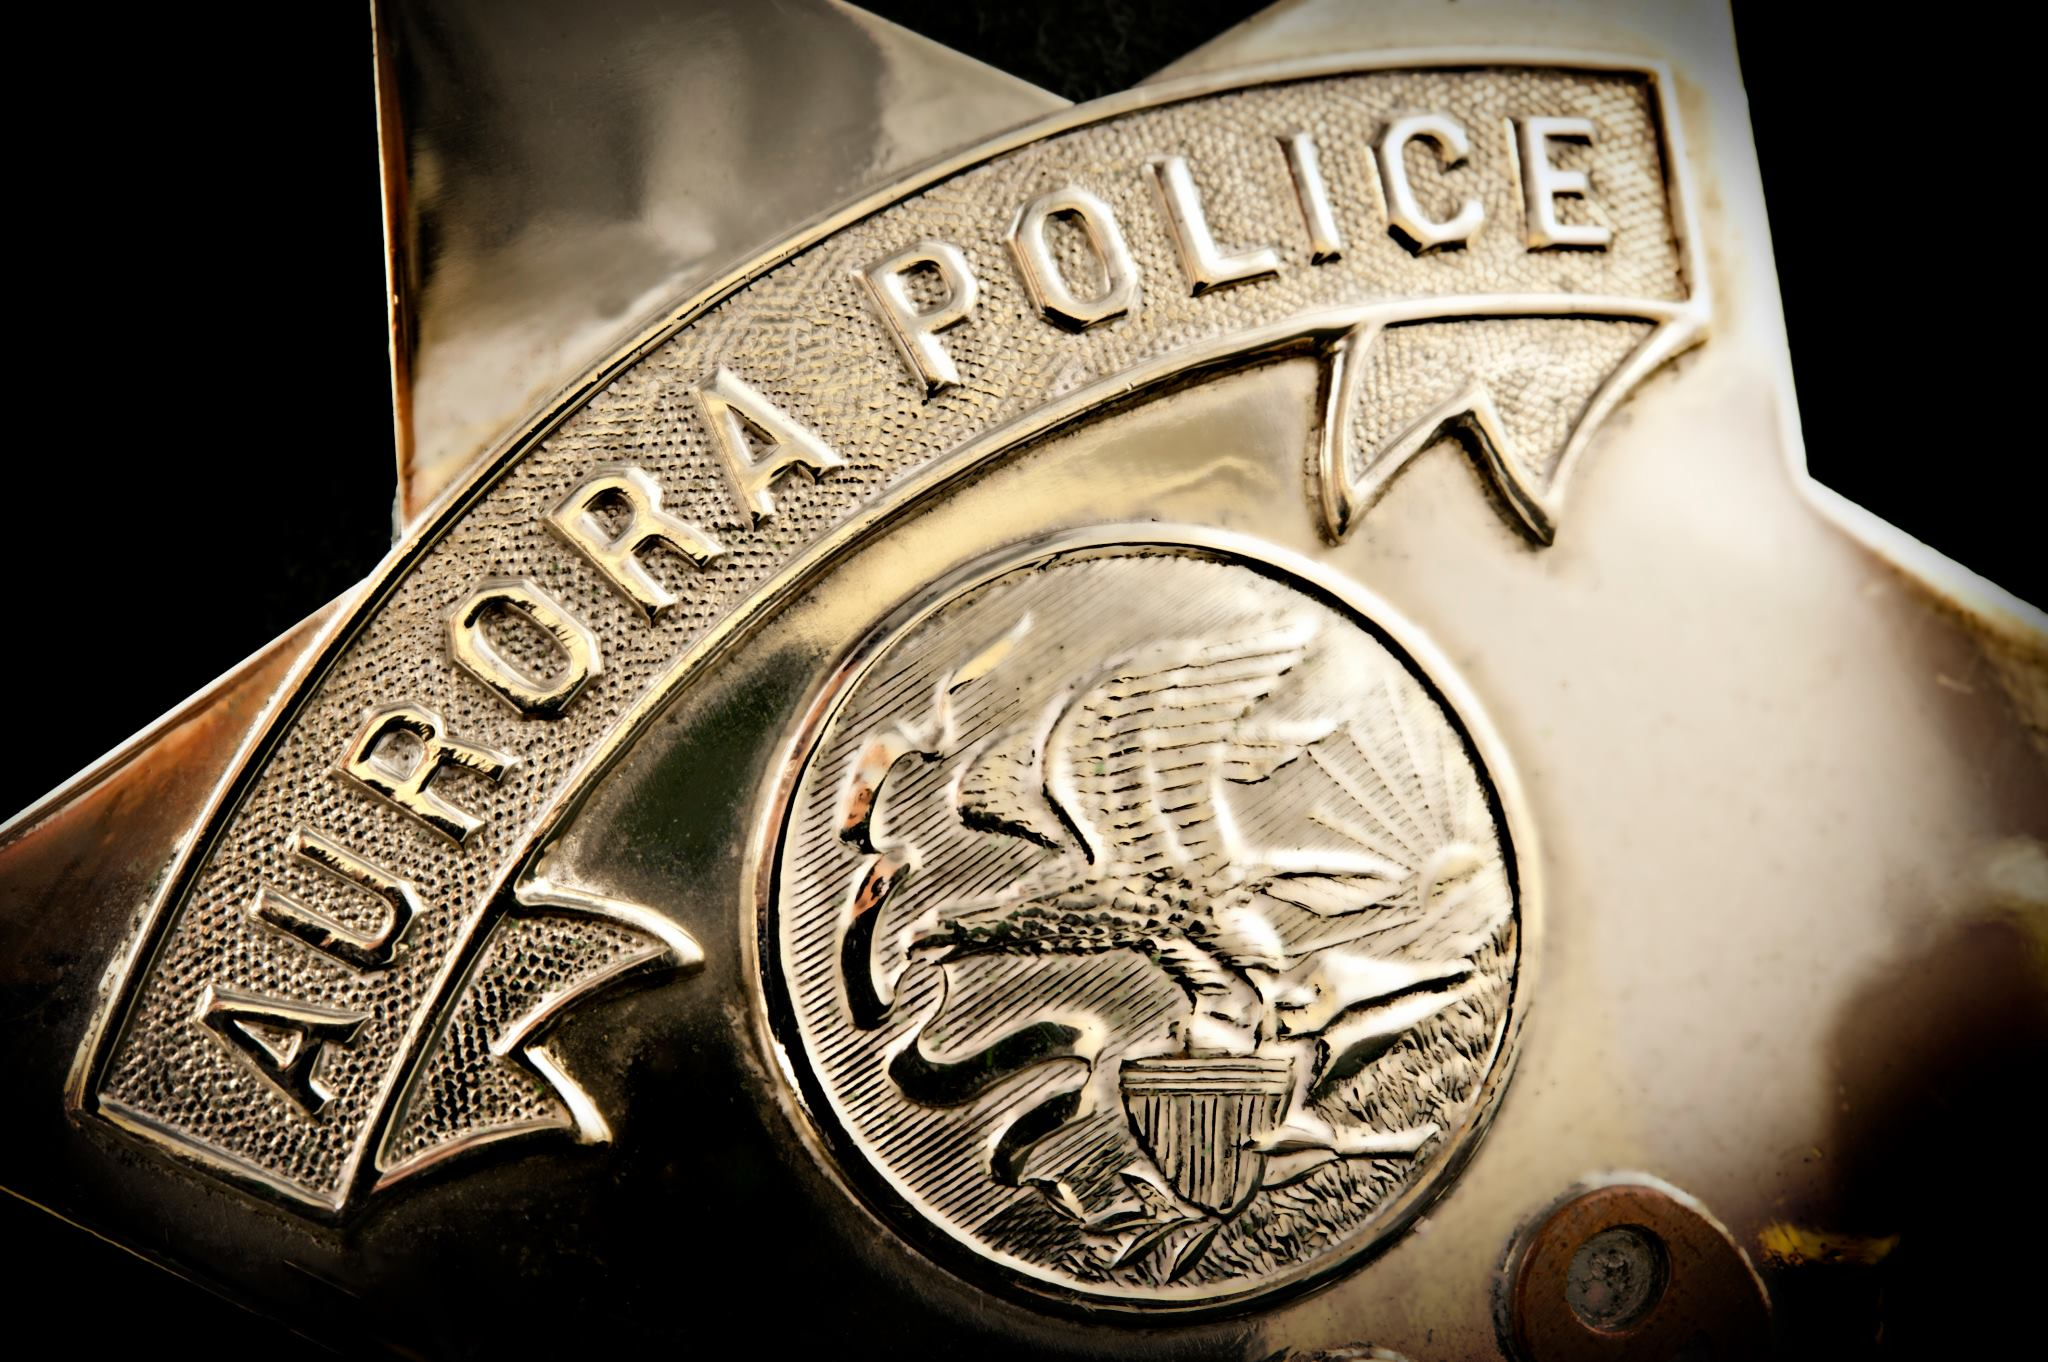 An Aurora police officer fatally shot a dog that charged at officers during a domestic violence investigation Sept. 20, 2020.